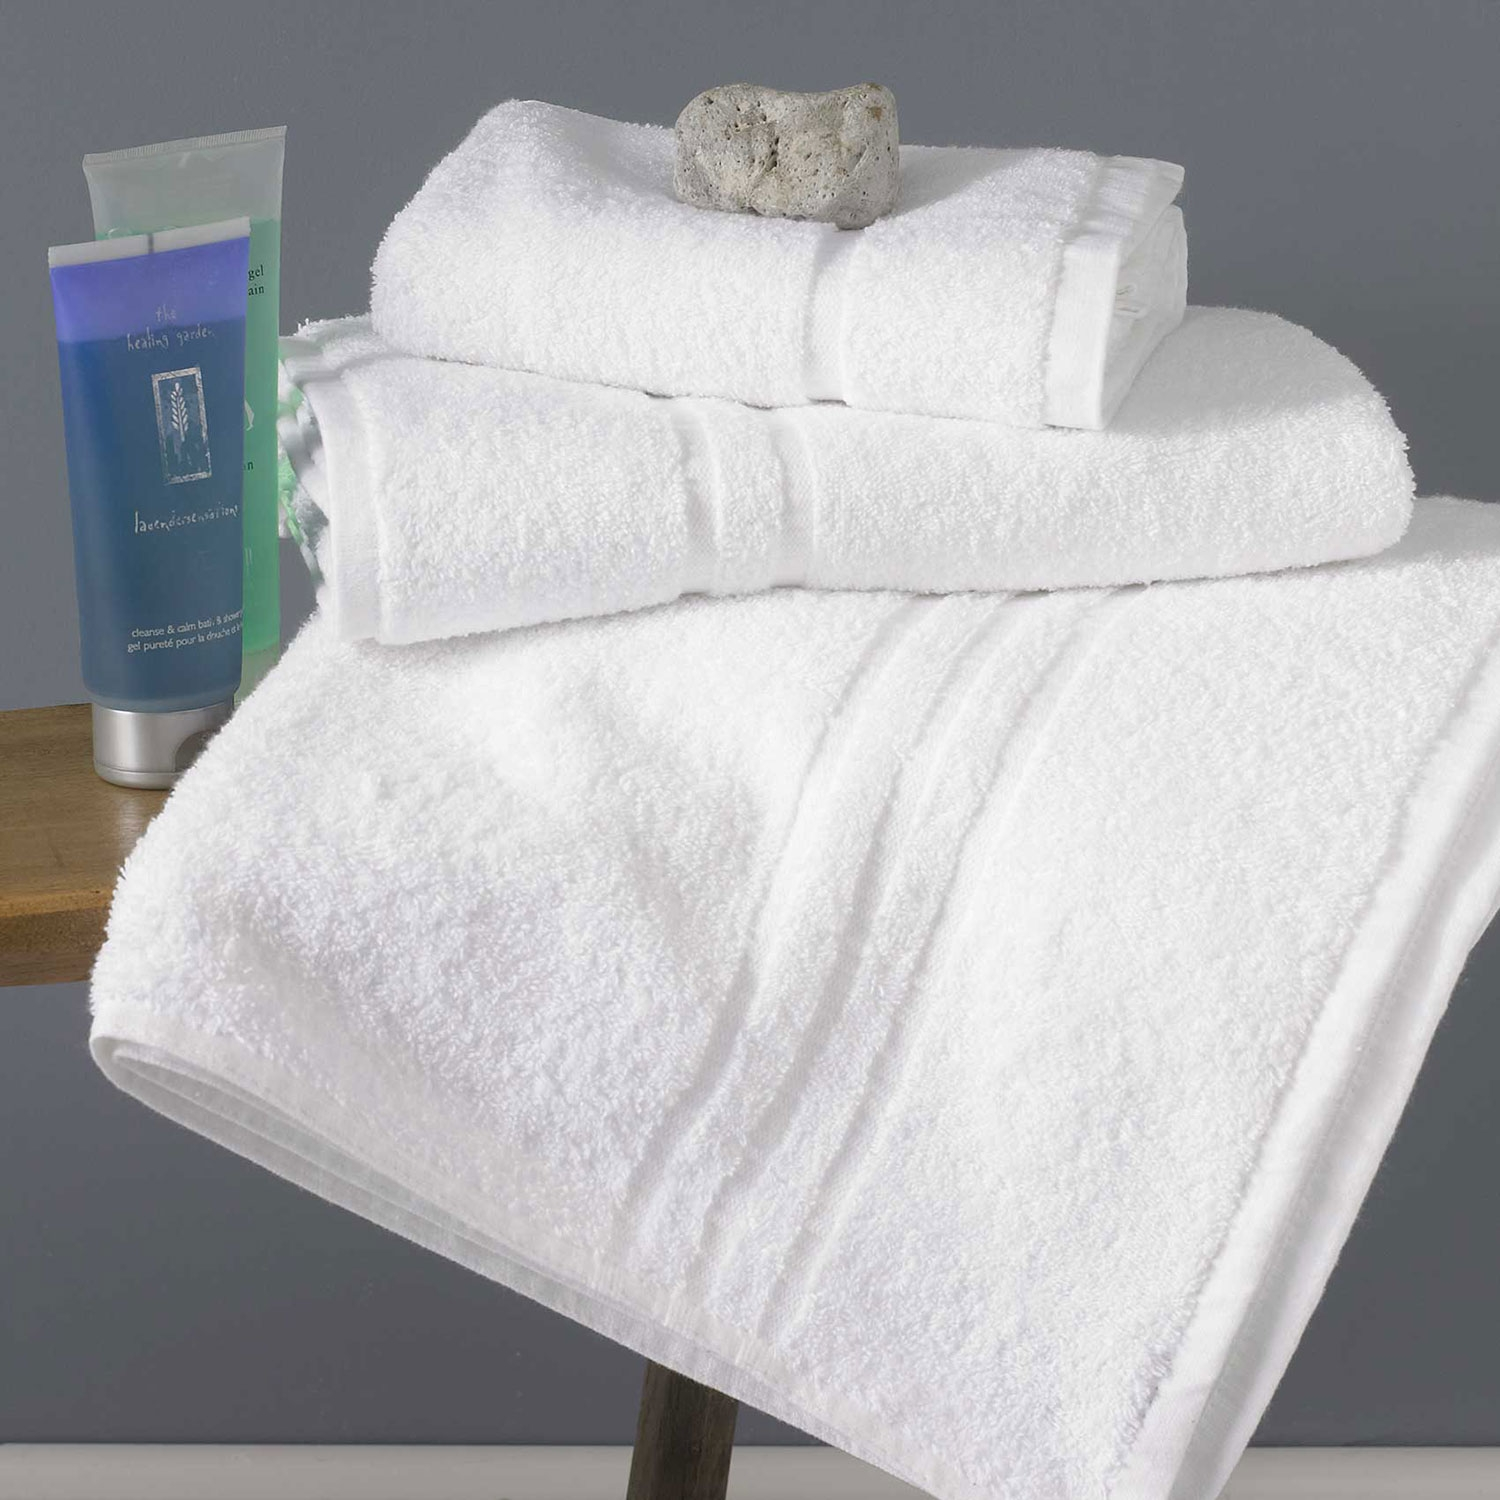 HENLEY COTTON TOWELS